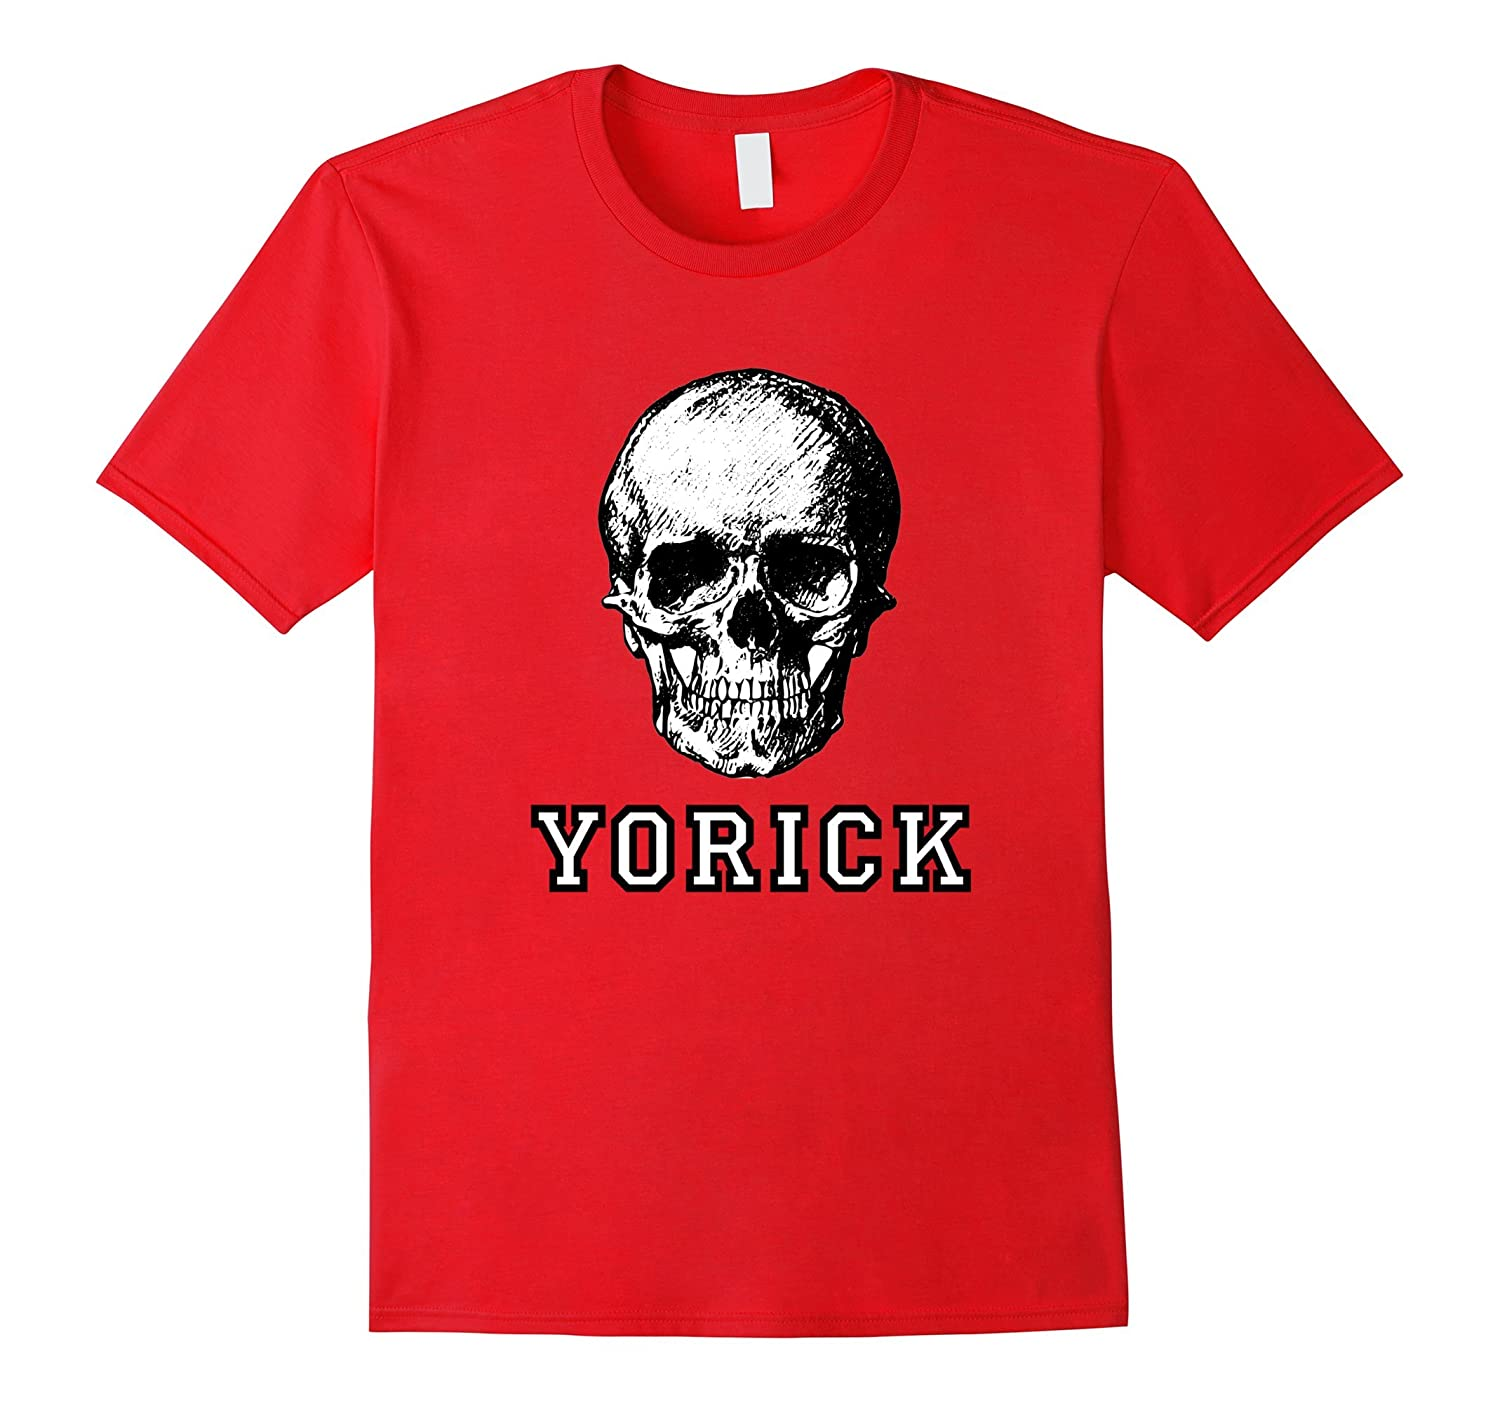 Yorick's Skull from Hamlet the Shakespeare Play Tshirt Gift-CL